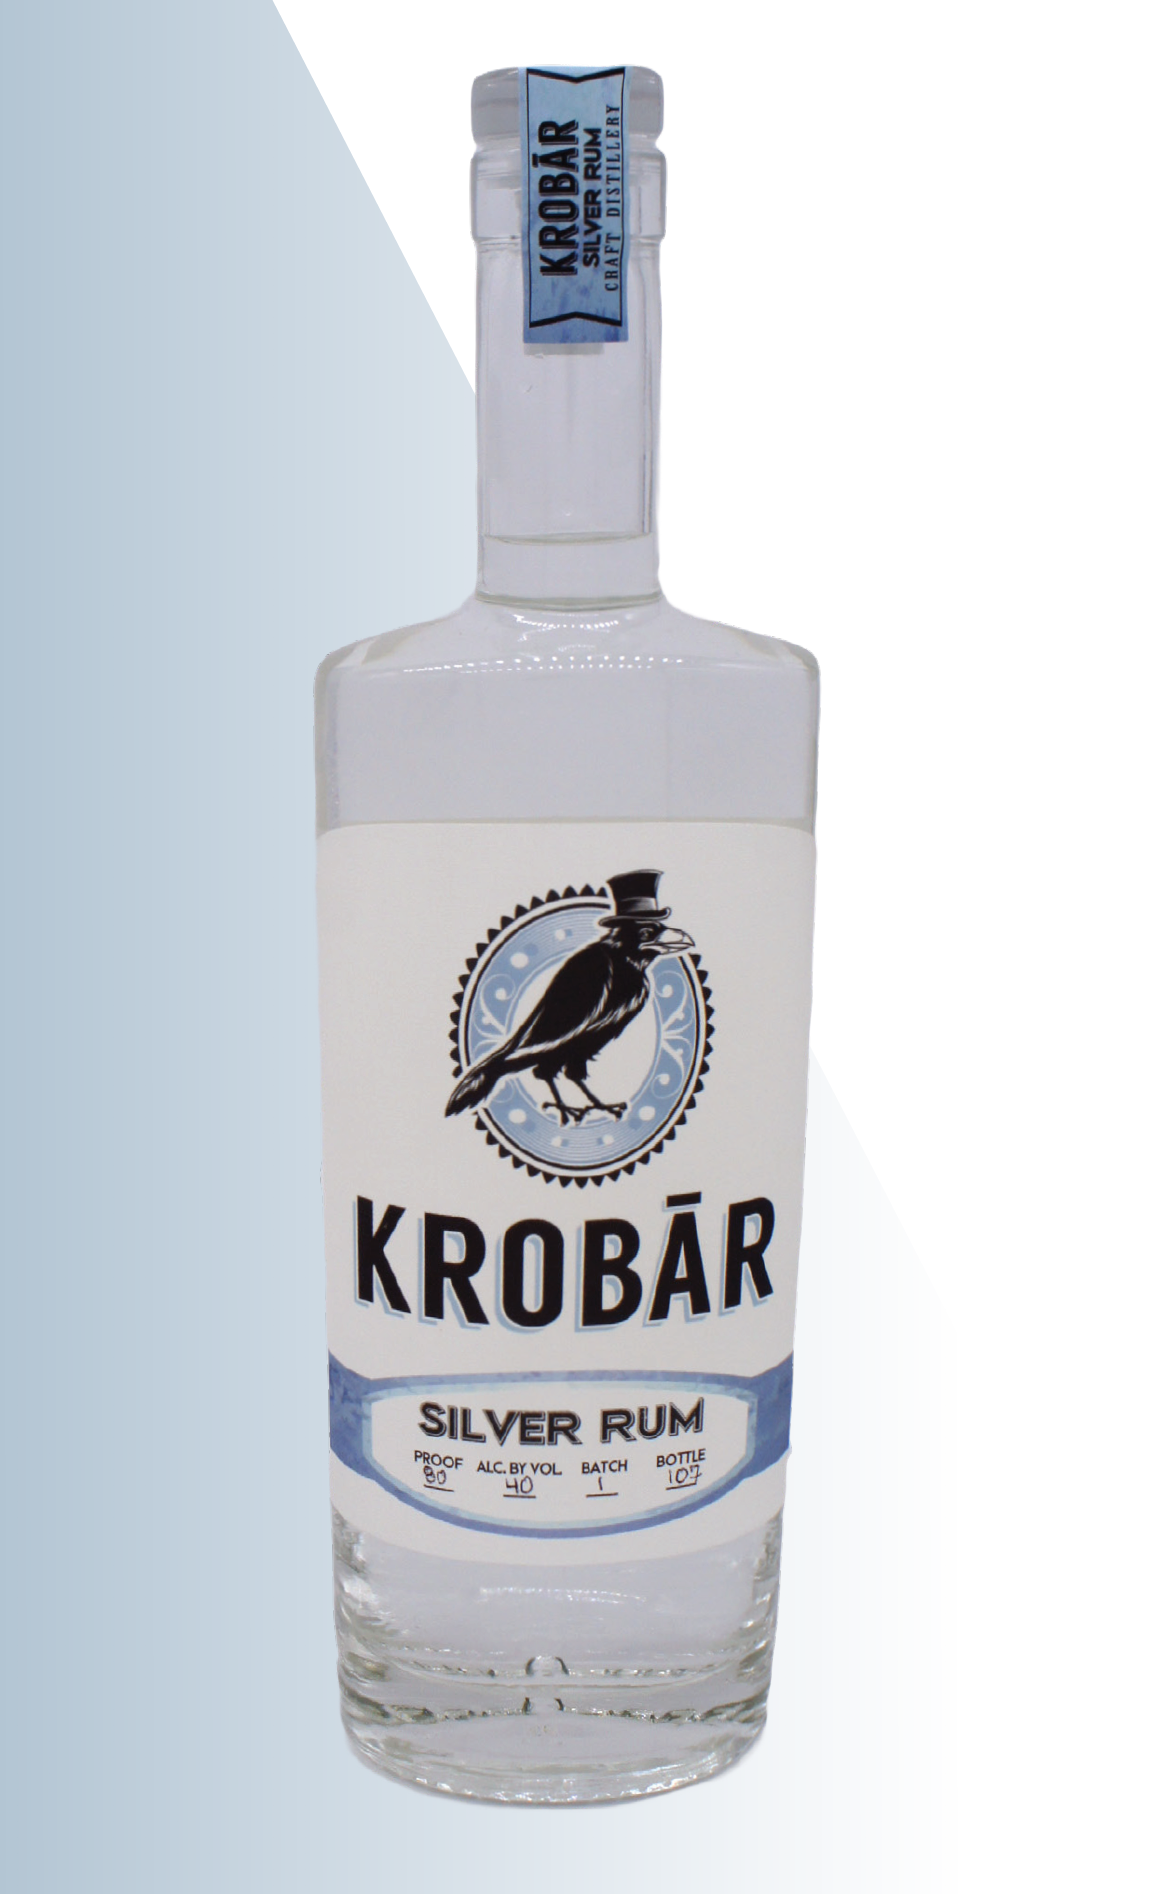 - KROBAR Silver RumThis unaged rum brings tropical paradise to the palette. Creamy coconut flavors fuse with bright pineapple, making for an unparalleled mojito, Mai Tai, or Pina Colada. 80 Proof / 40% ABV